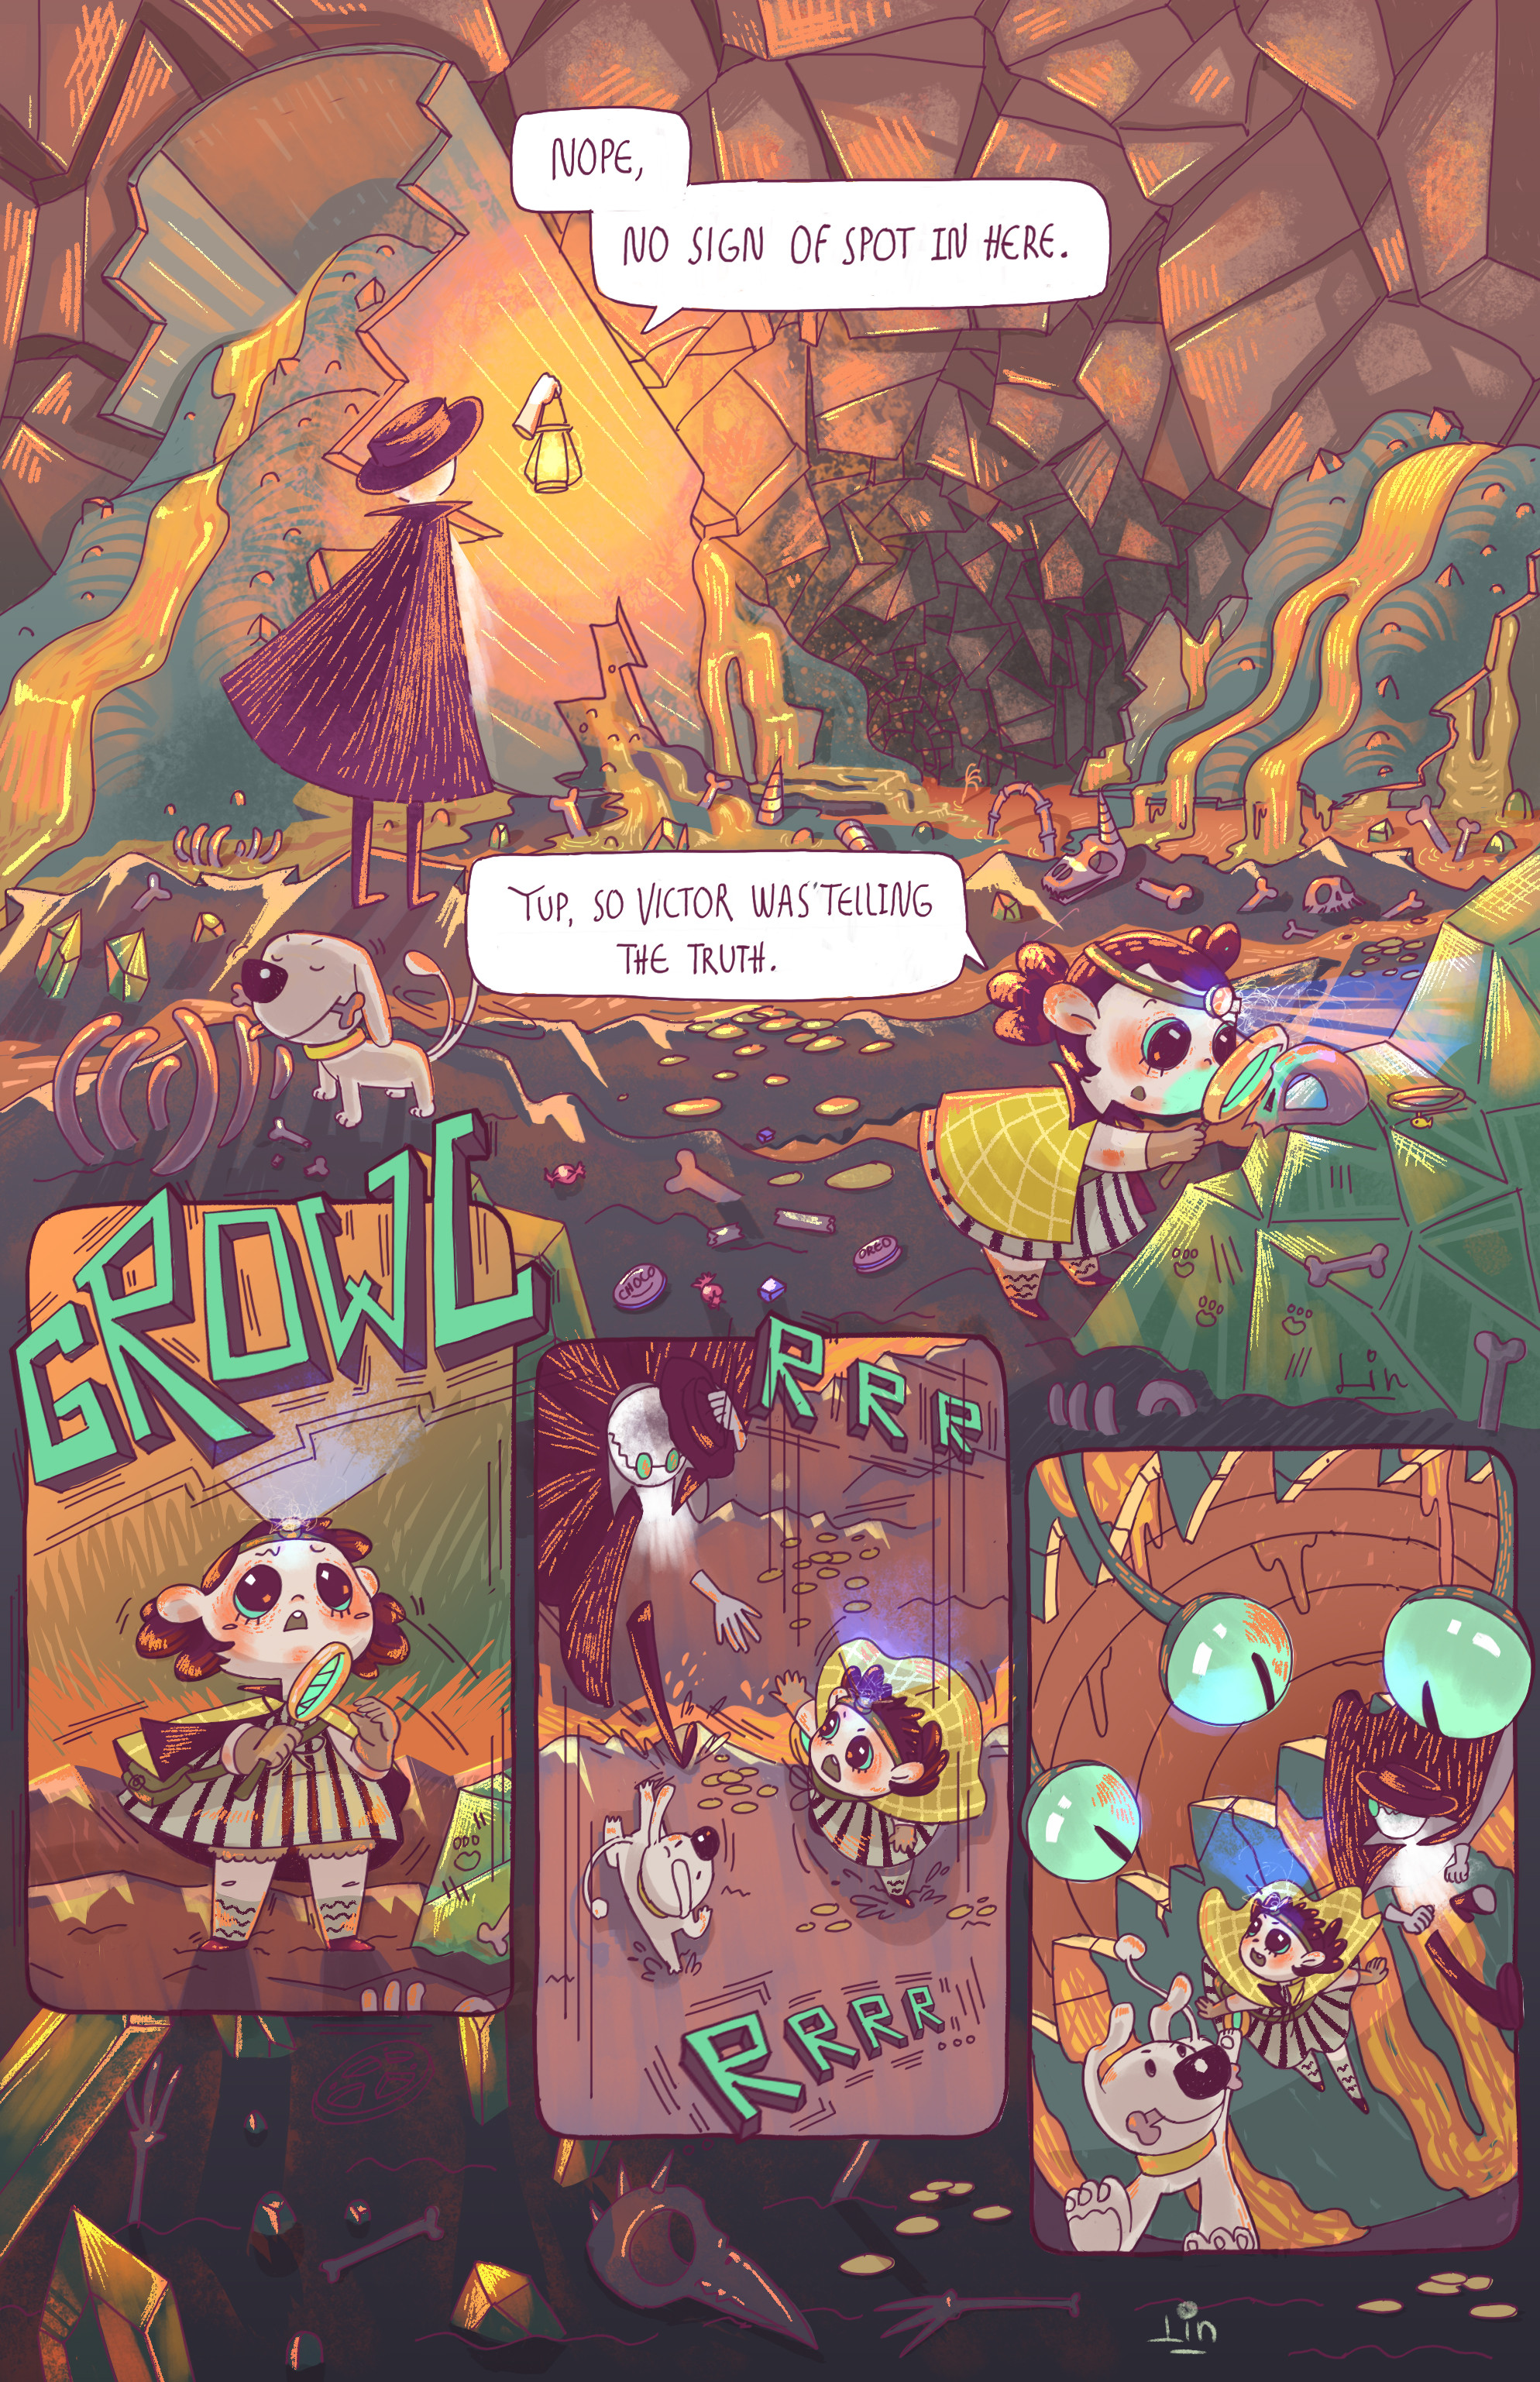 Early development of a graphic novel  I'm working on. Hope you like it too! =)